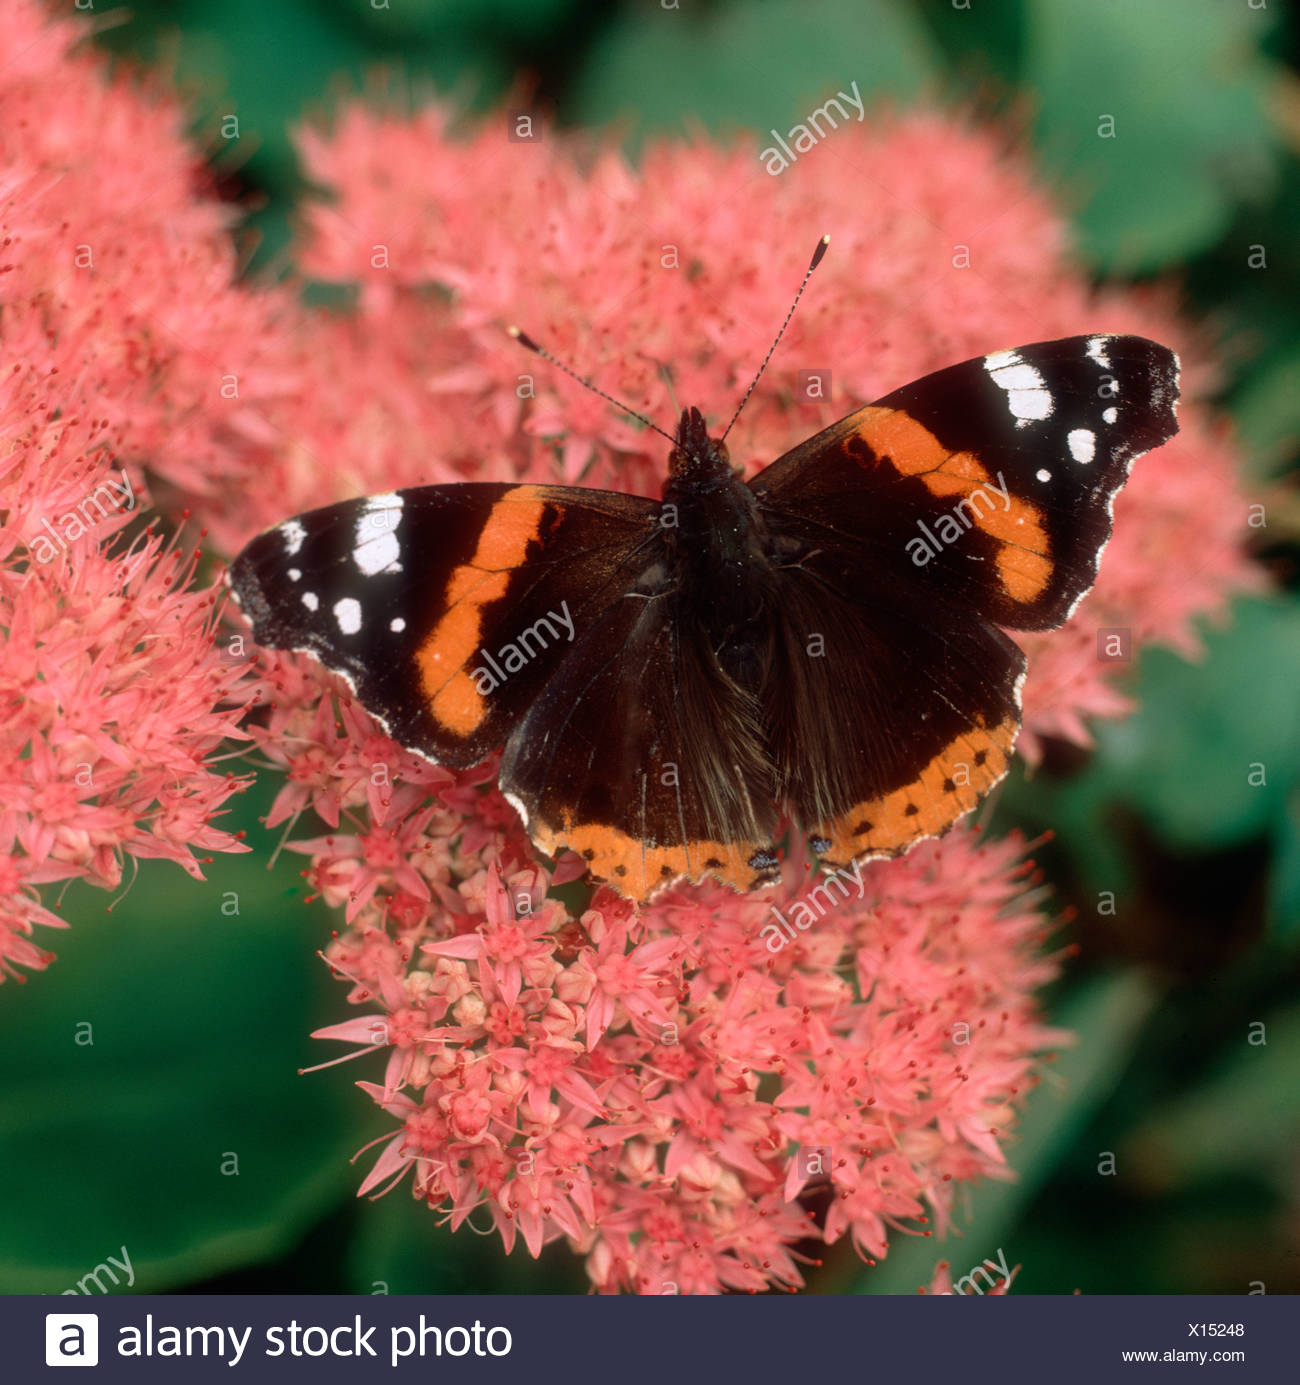 Red admiral butterfly Vanessa atalanta on a Sedum spectabile flowerhead - Stock Image